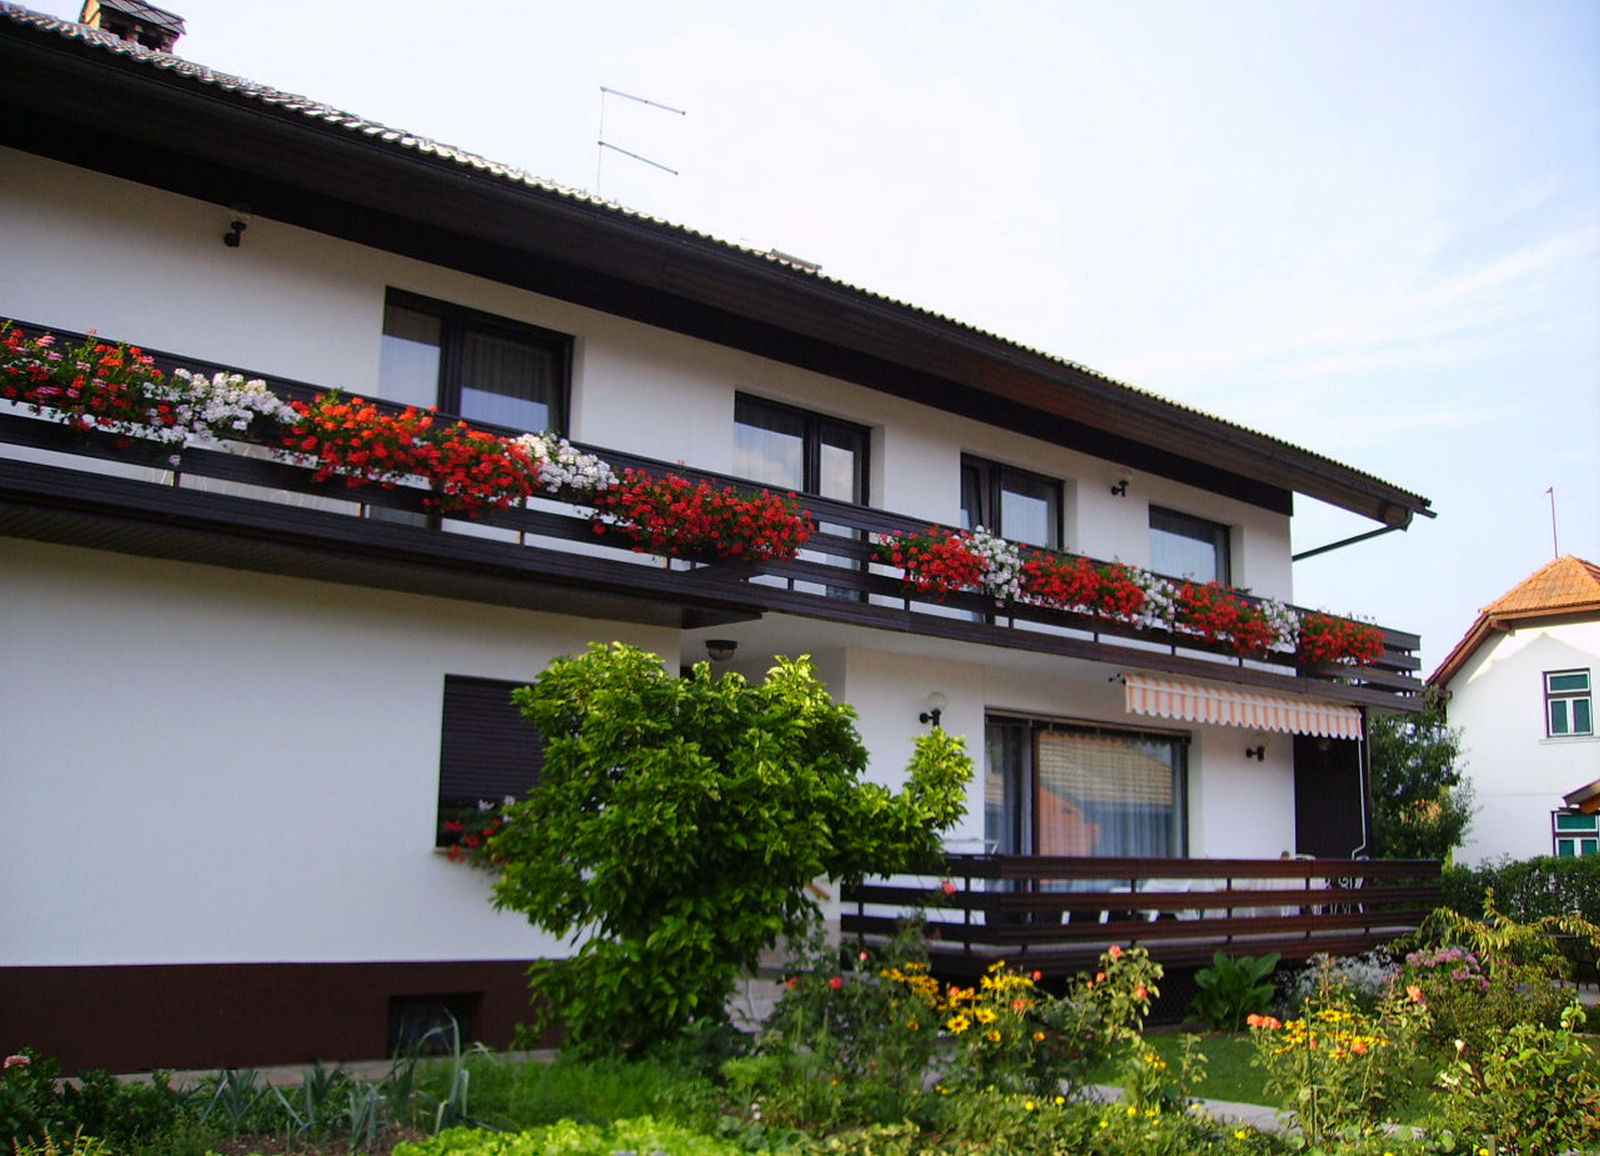 Fine Stay apartment in Lake Bled, Slovenia with a garden